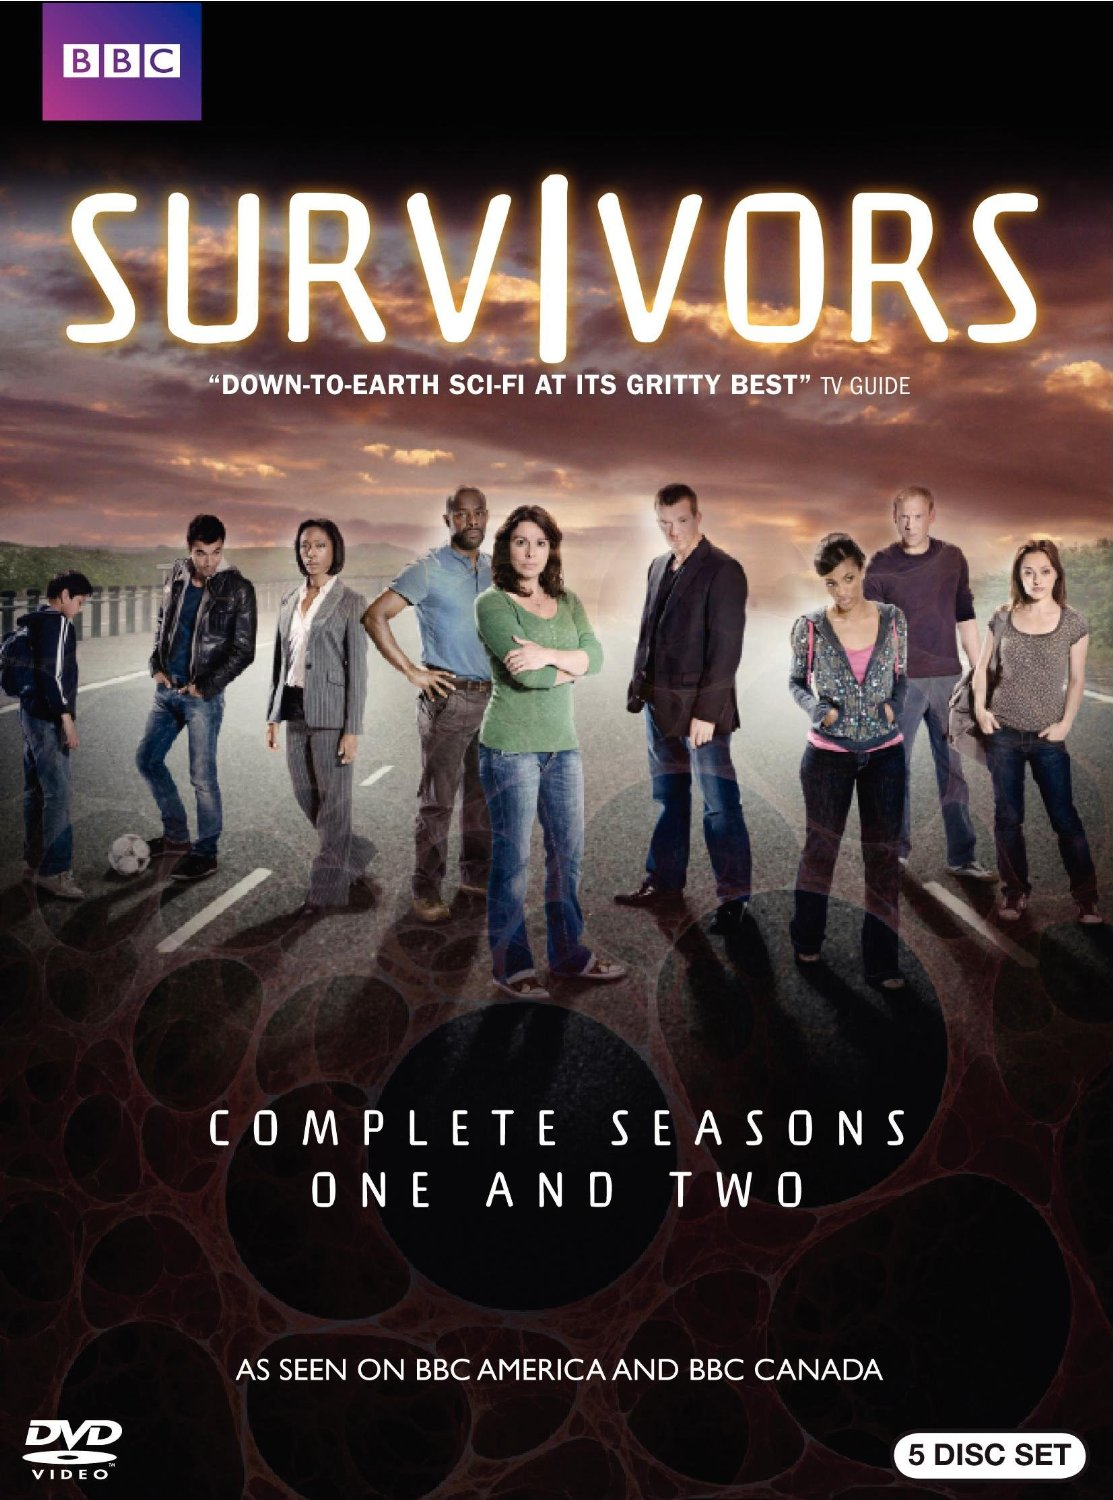 Survivors (2008 series)